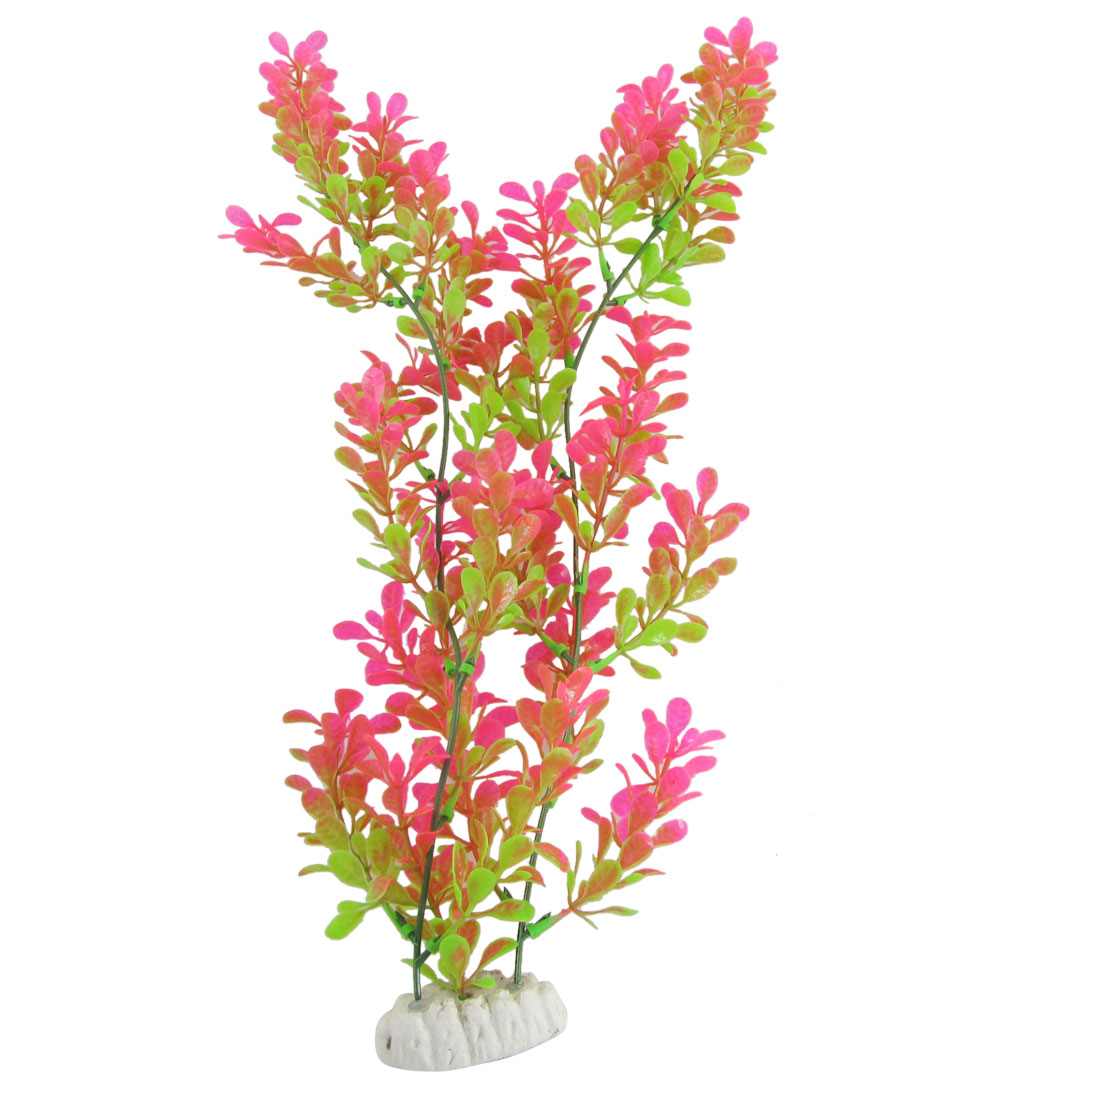 Aquarium Aquascaping Plastic Plant Decor Amaranth Green